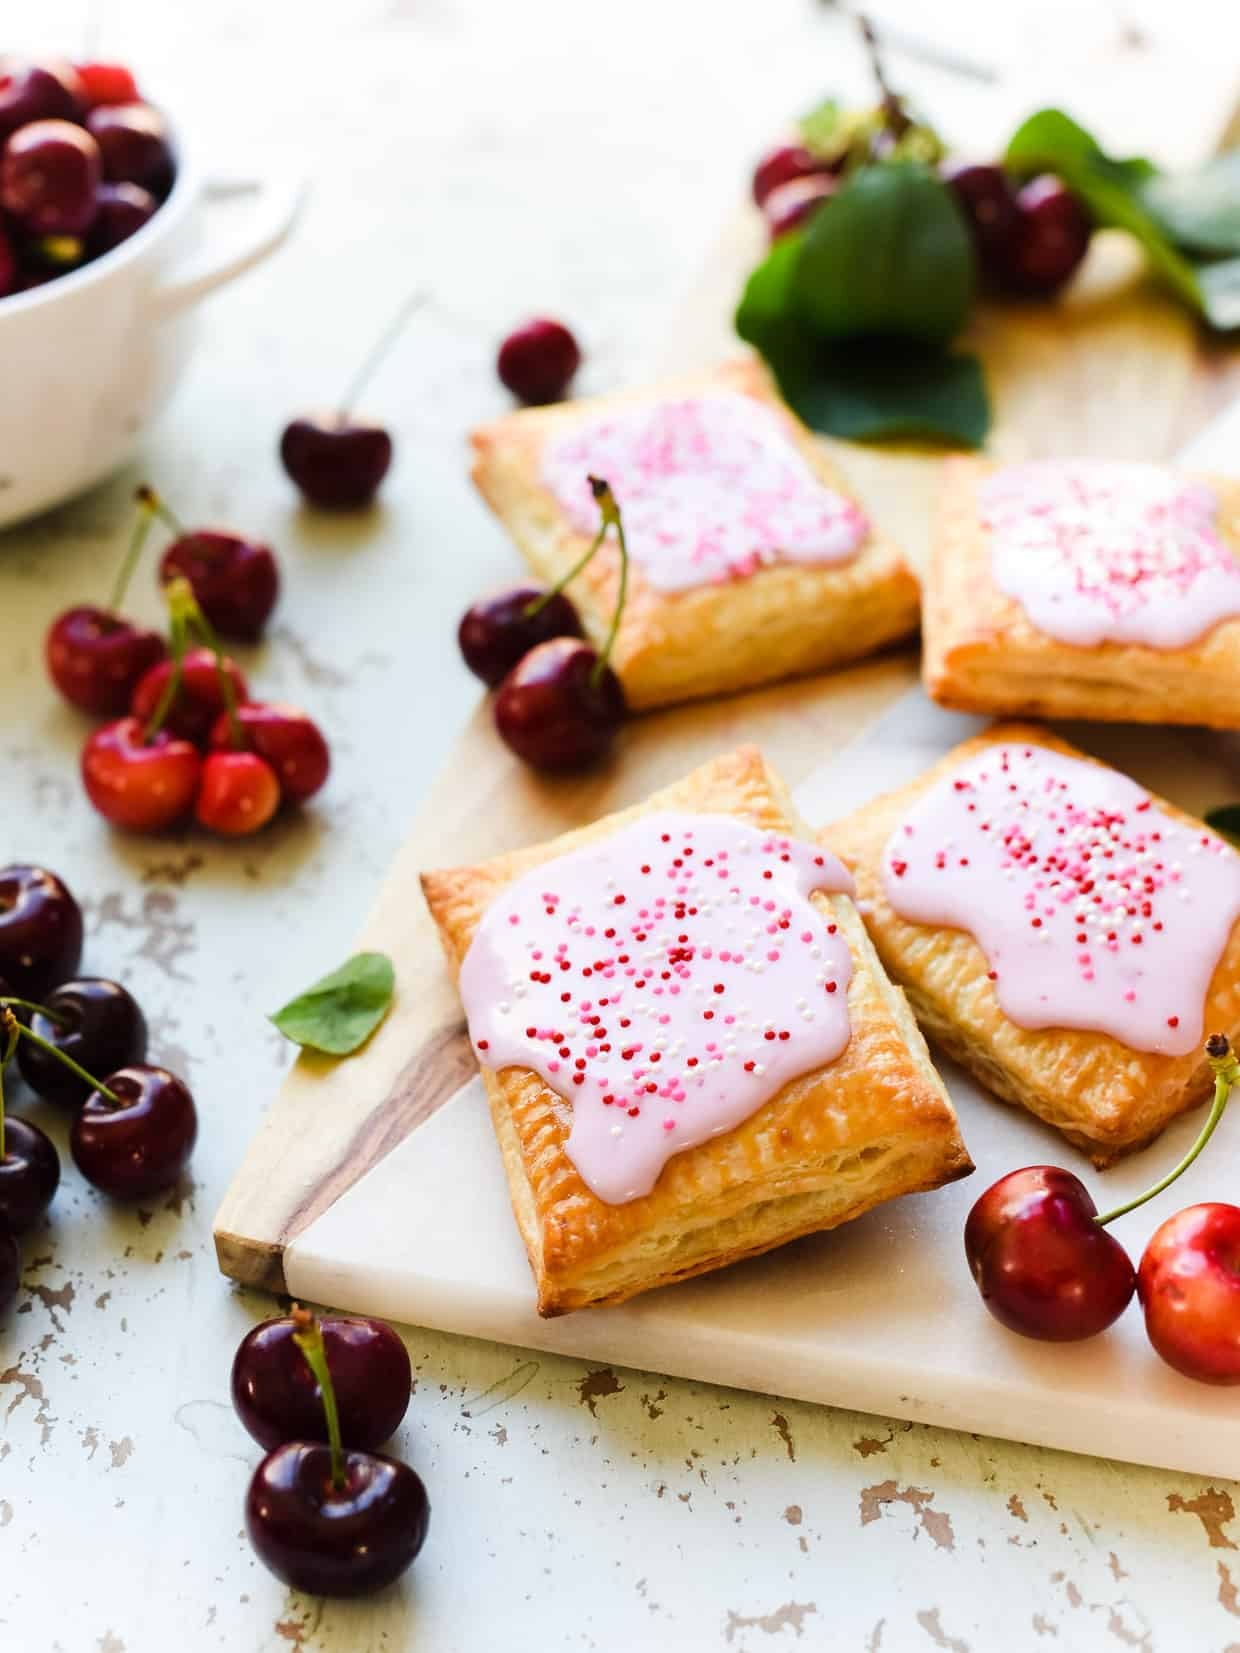 Homemade Cherry Pop Tarts surrounded by fresh cherries